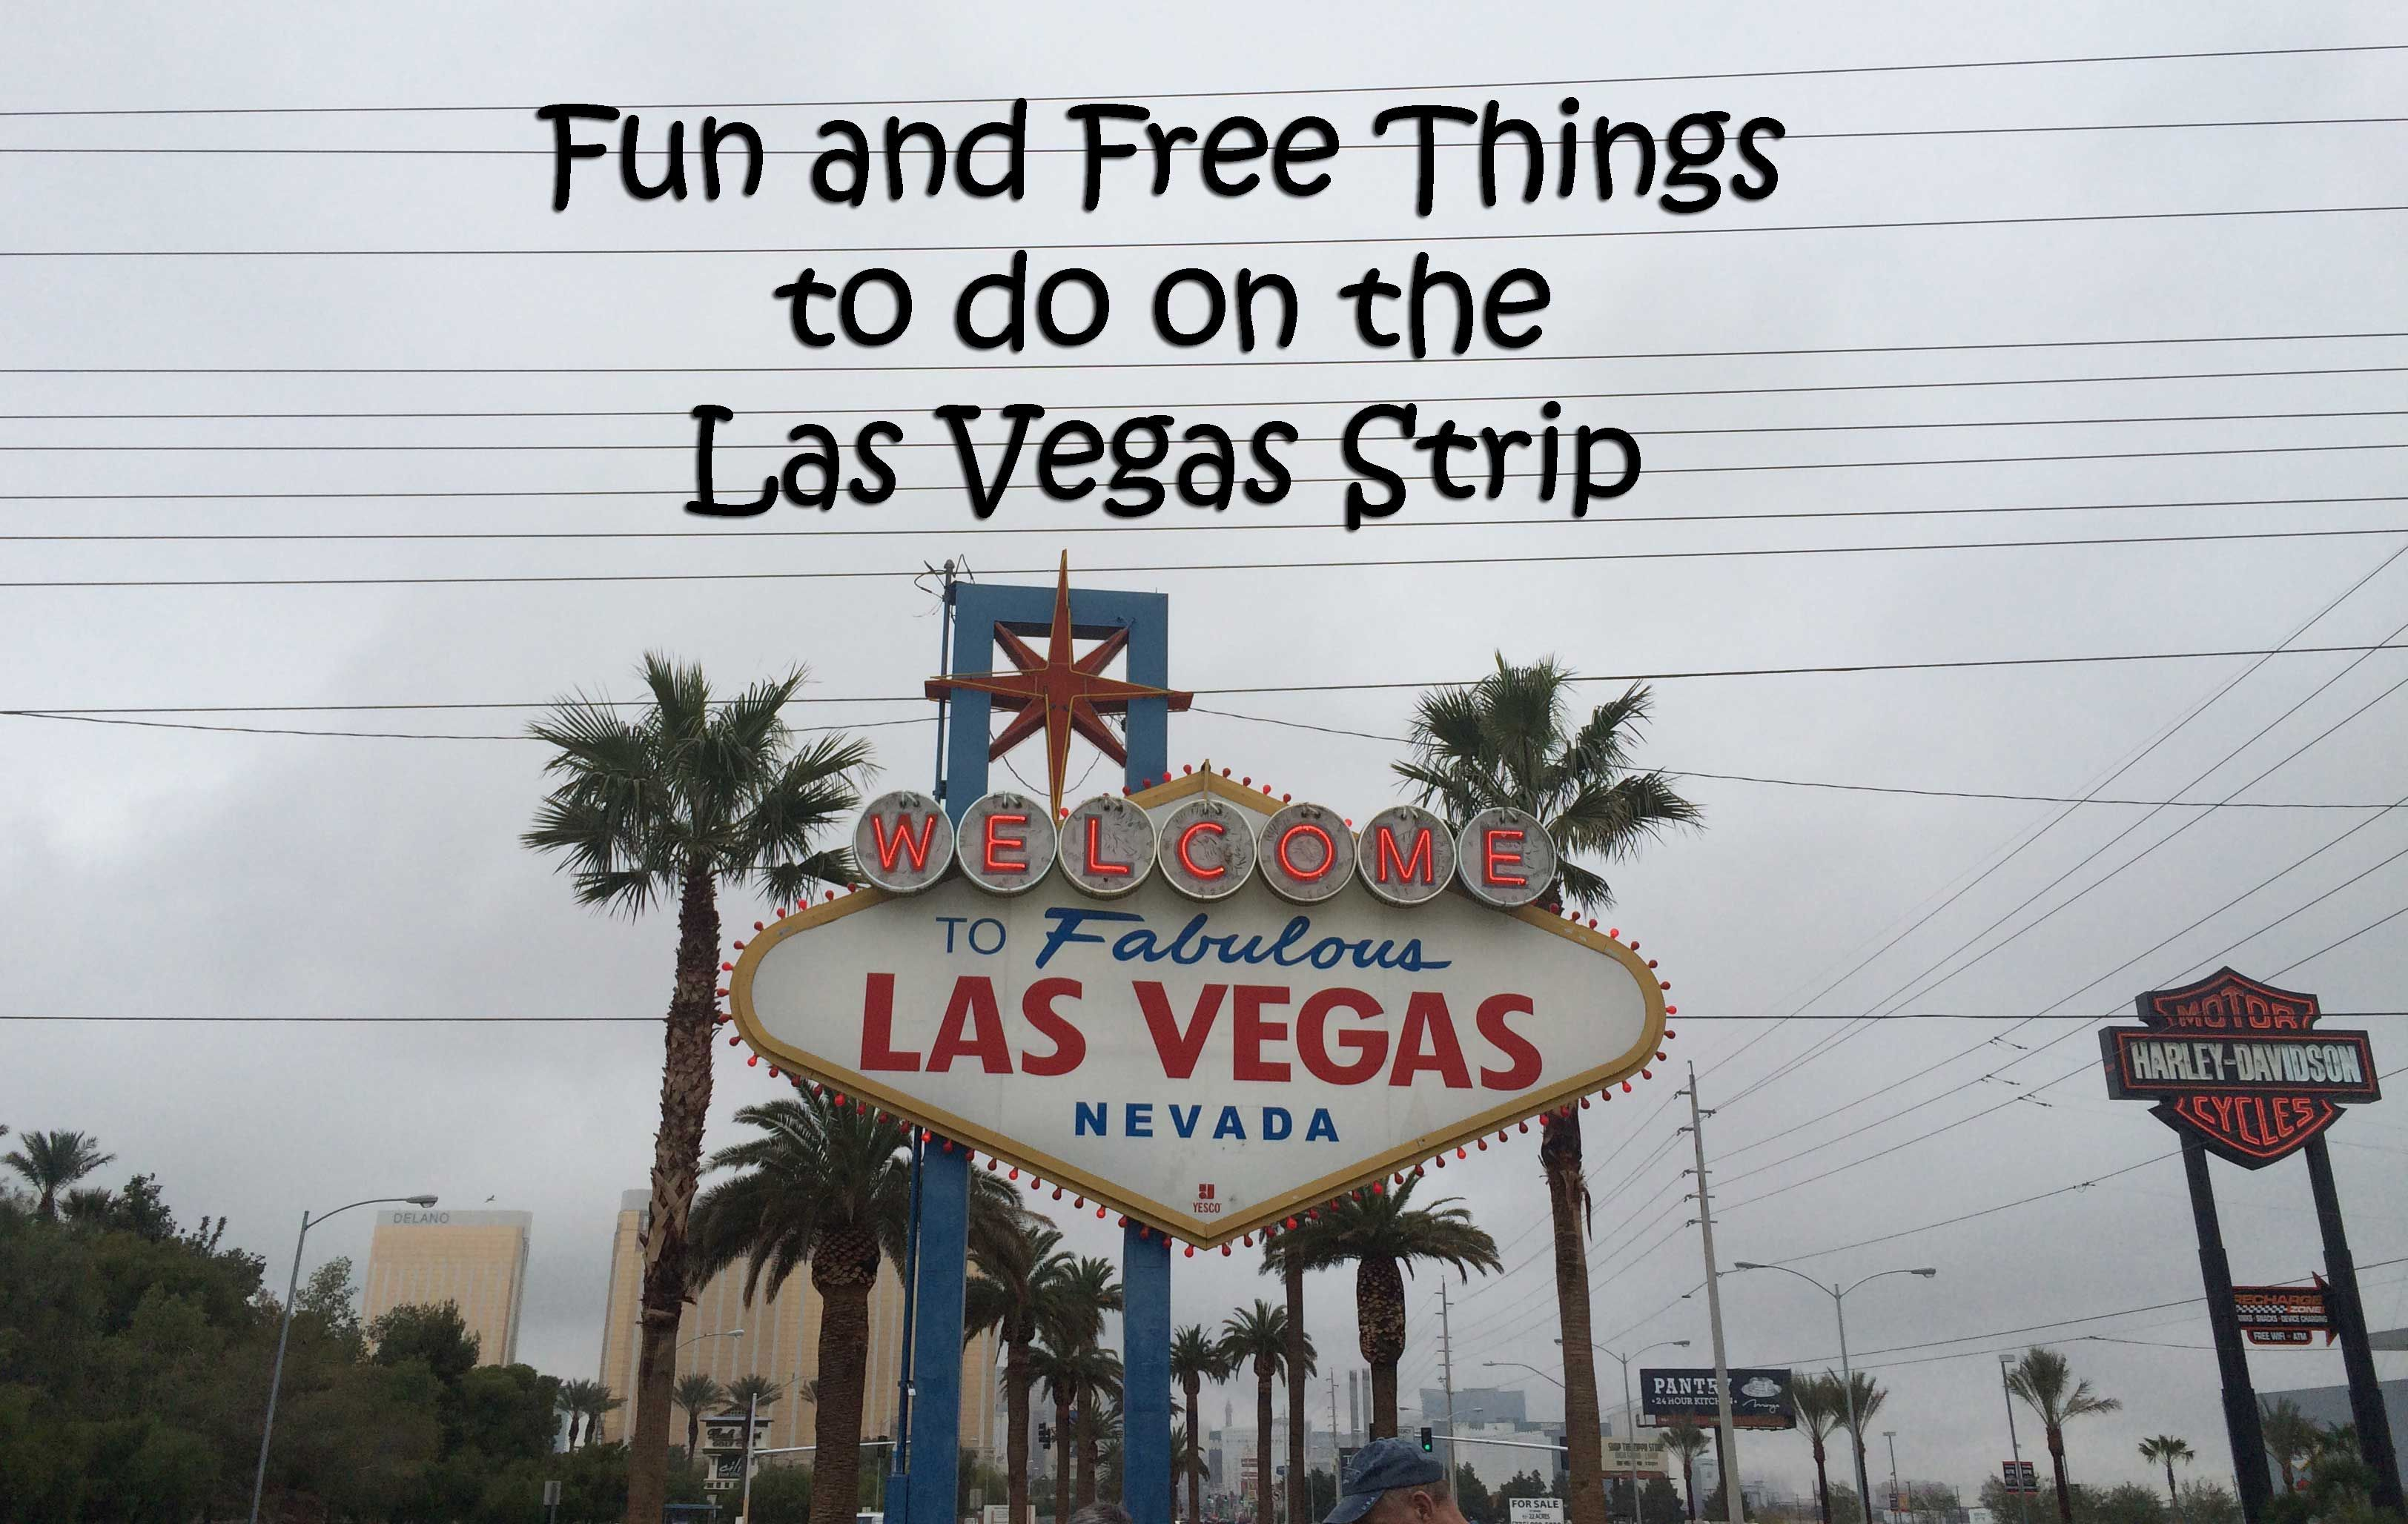 List of fun and free attractions and activities on the Las Vegas